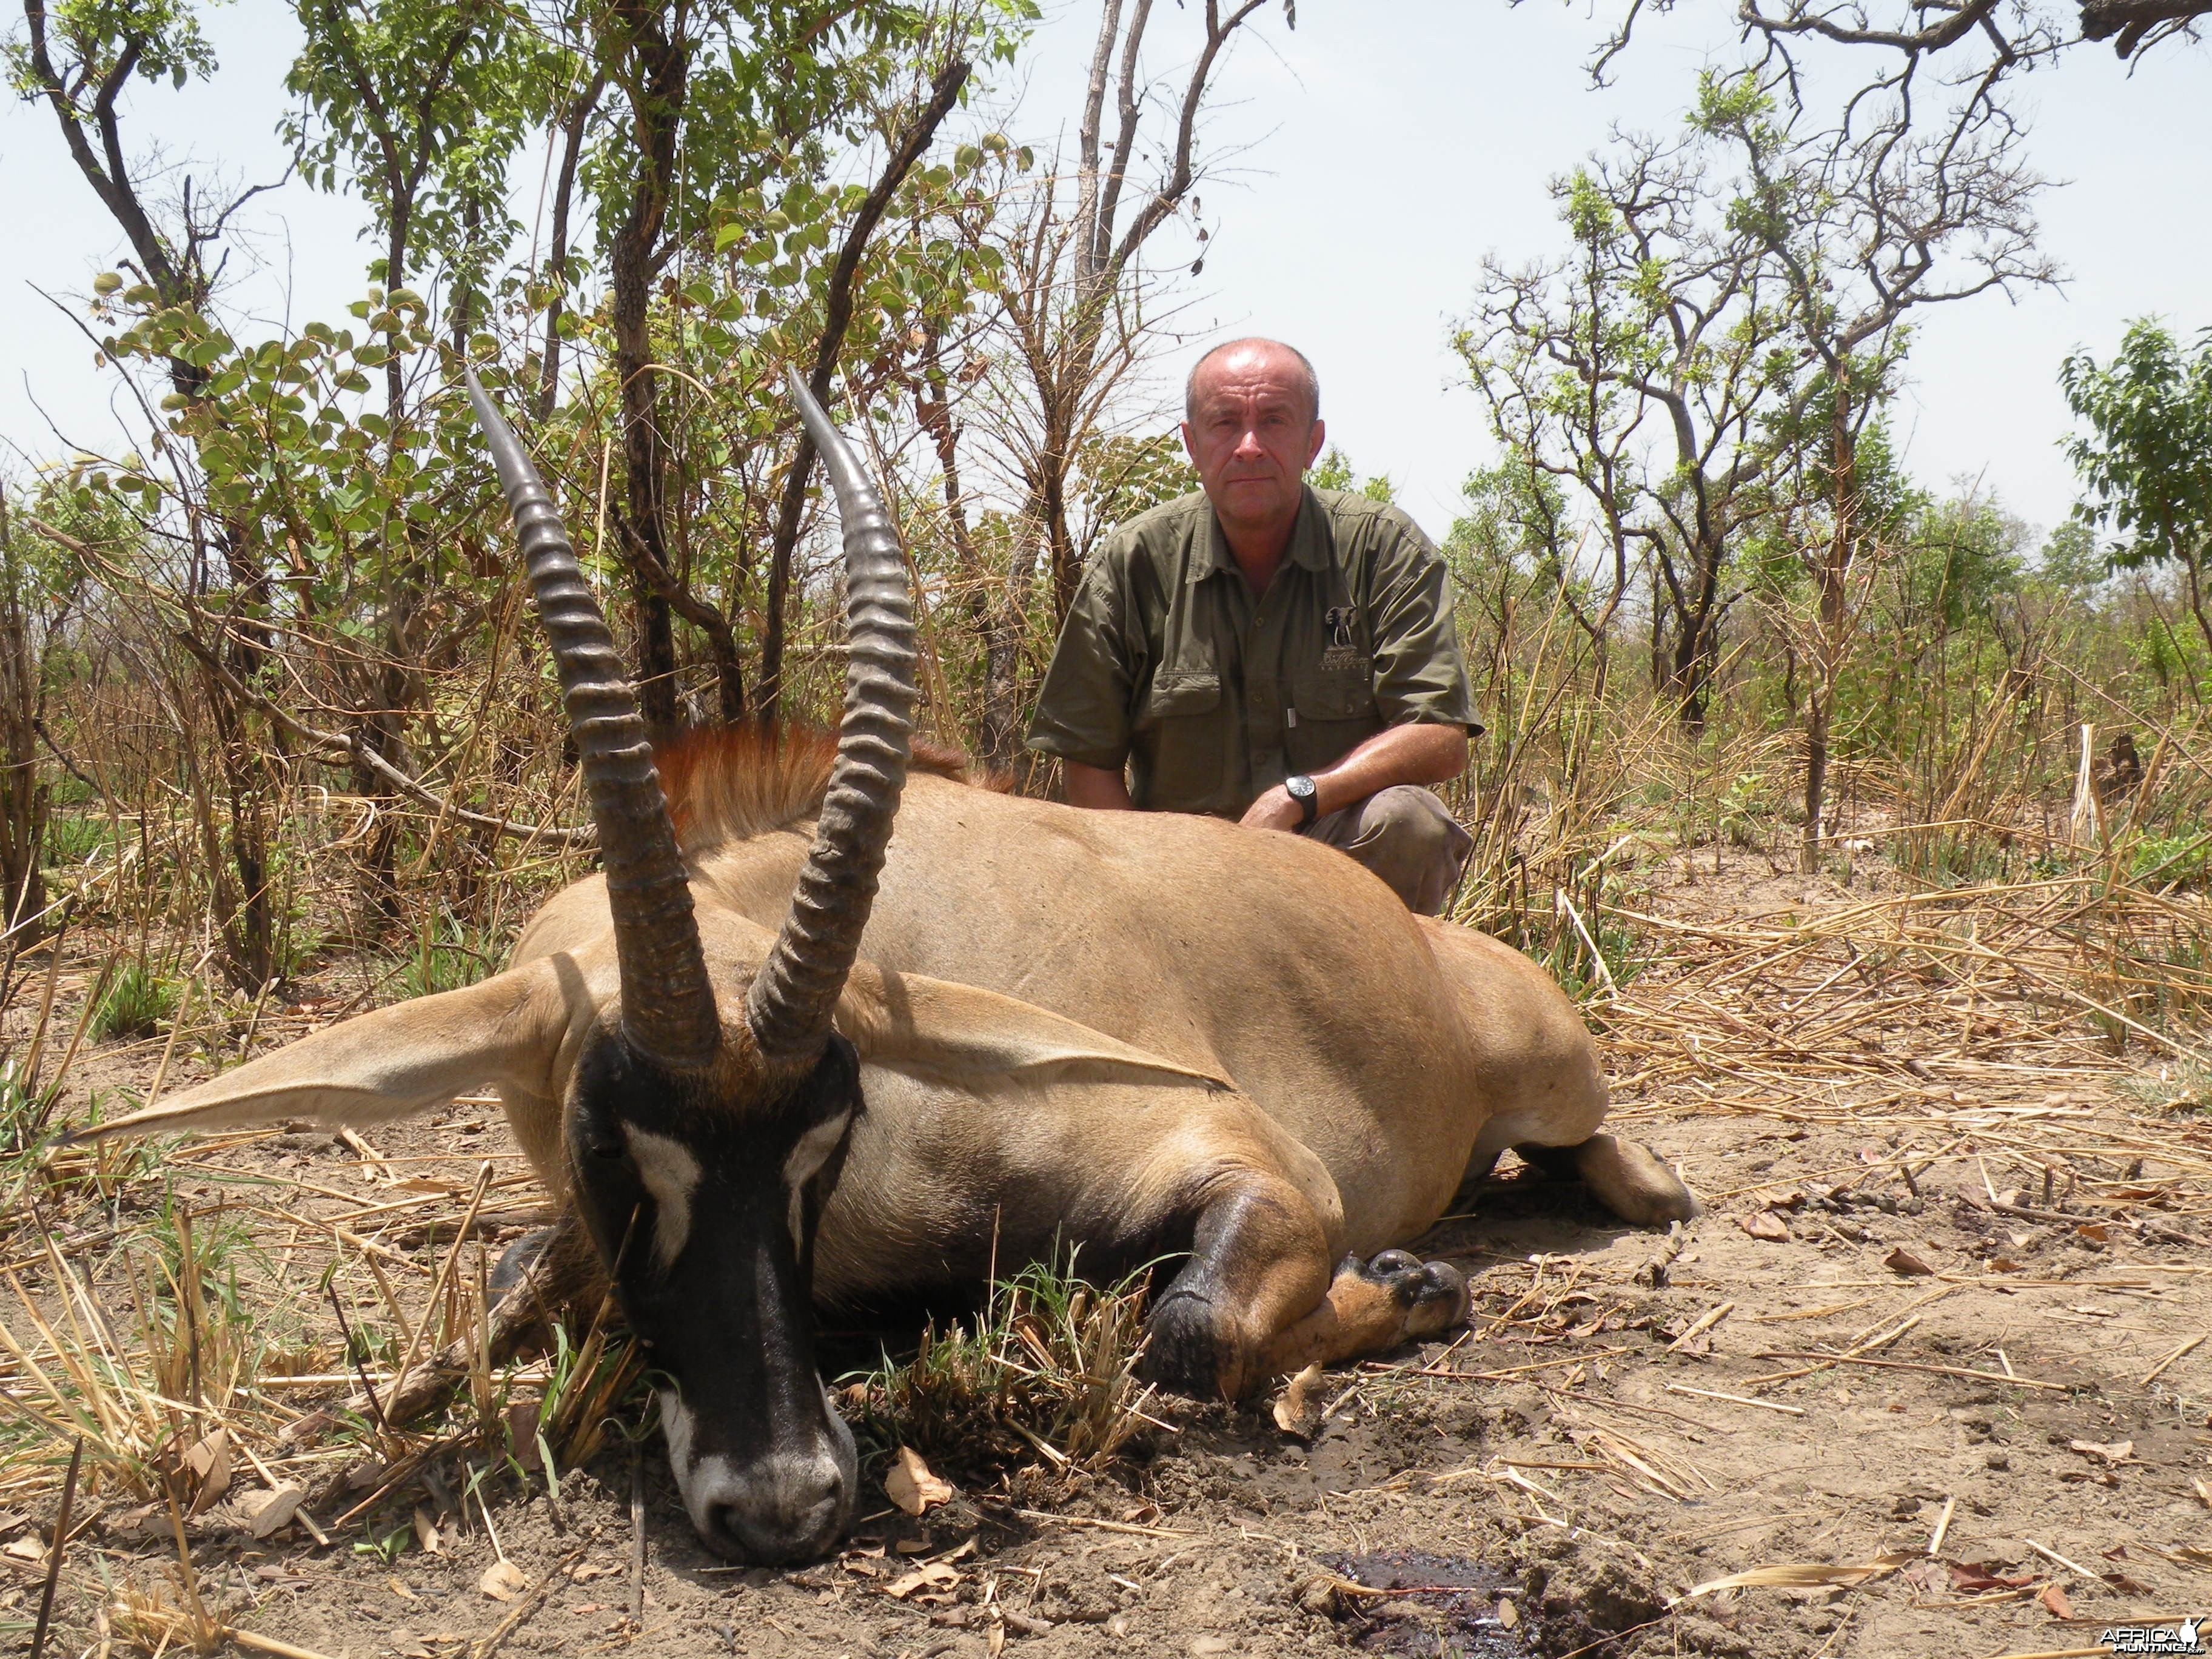 Western Roan Antelope hunted in Benin with Club Faune